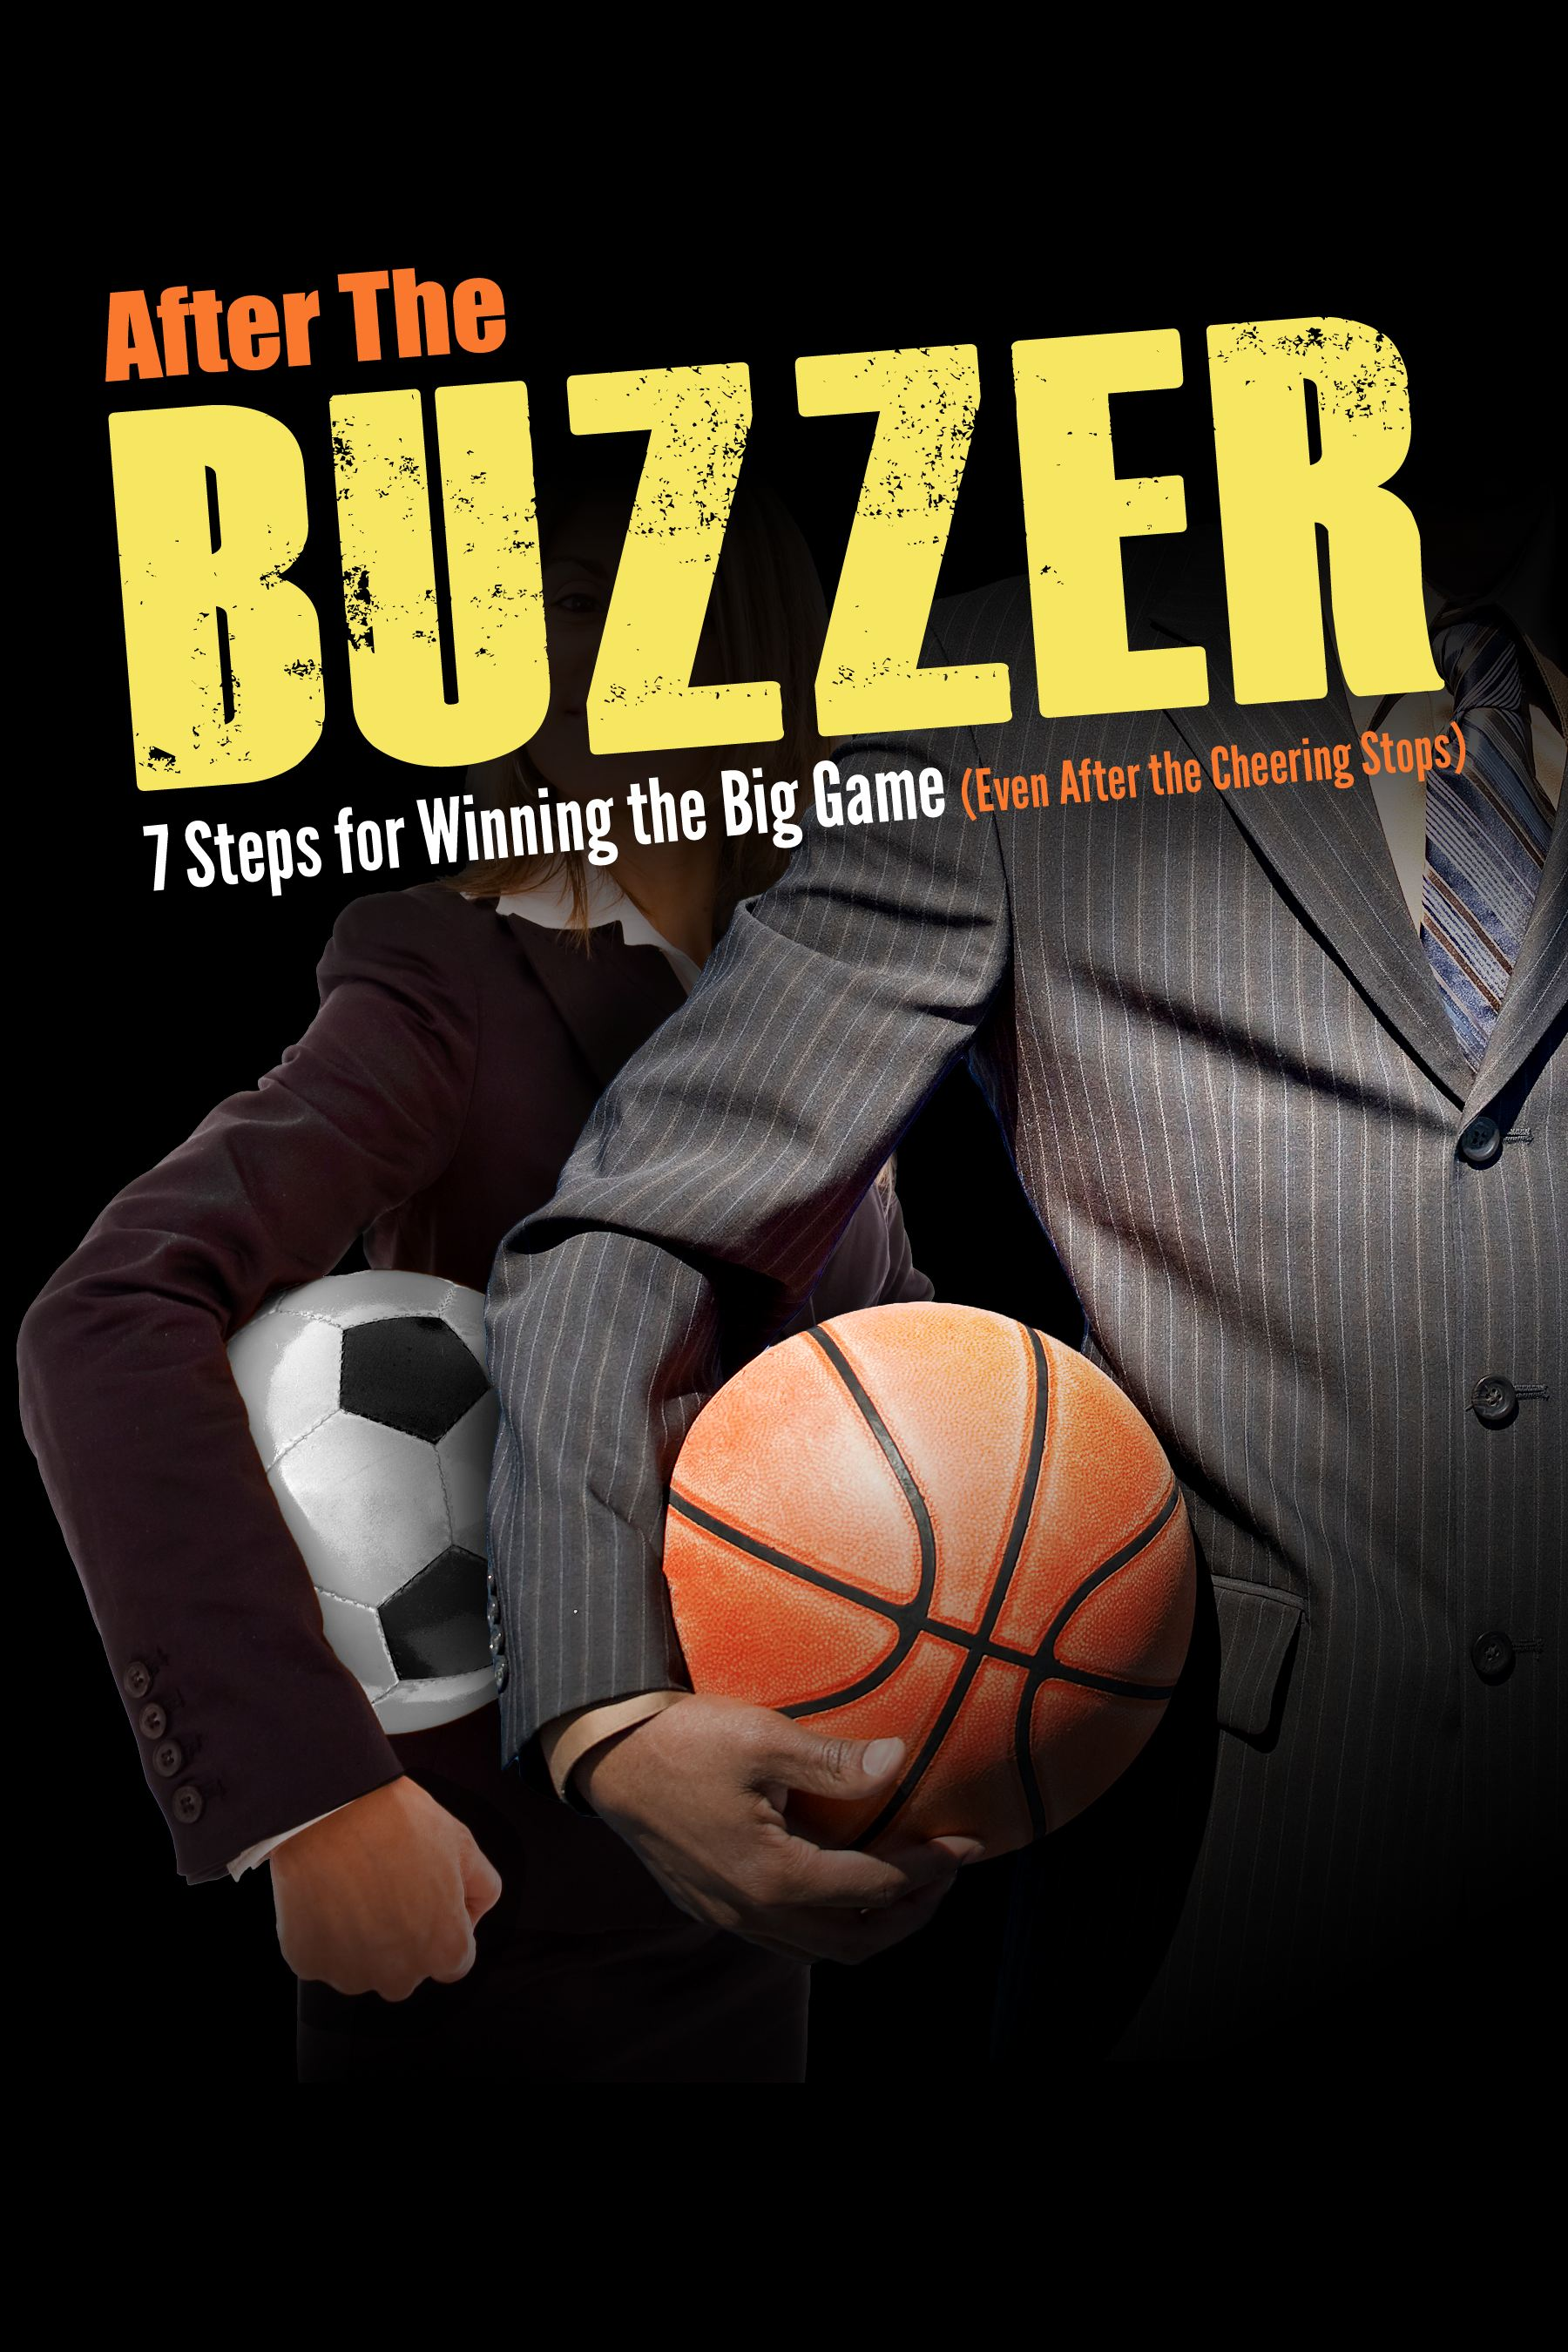 After the Buzzer: Seven Steps for Winning the Big Game (Life, After the Cheering Stops)